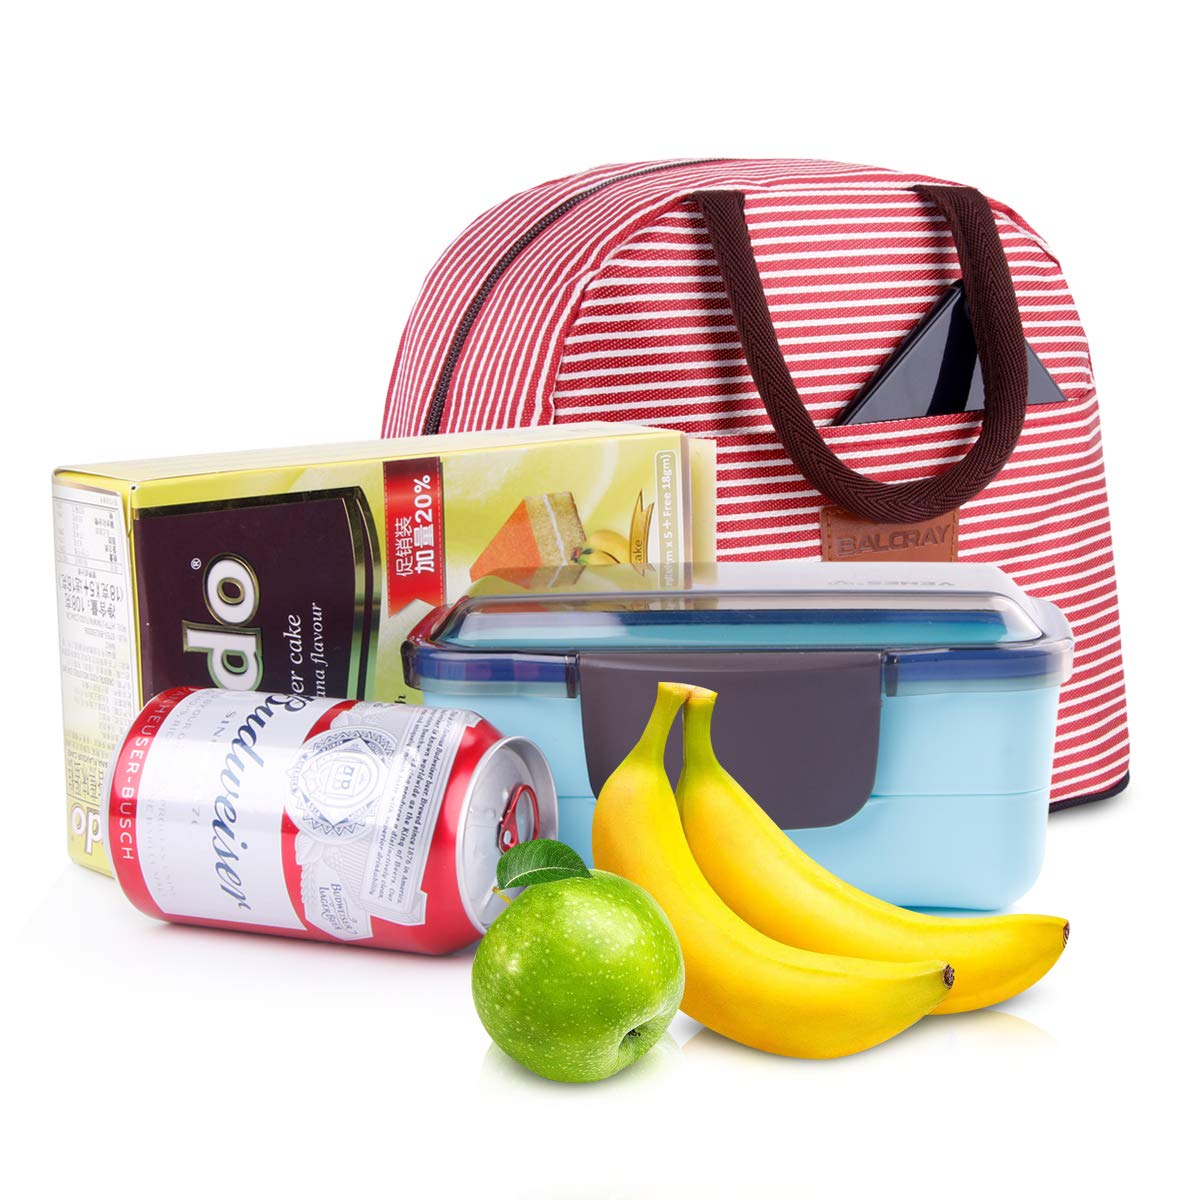 BALORAY Lunch Bag Tote Bag Lunch Bag for Students Lunch Box Insulated Lunch Container G-197S Fish